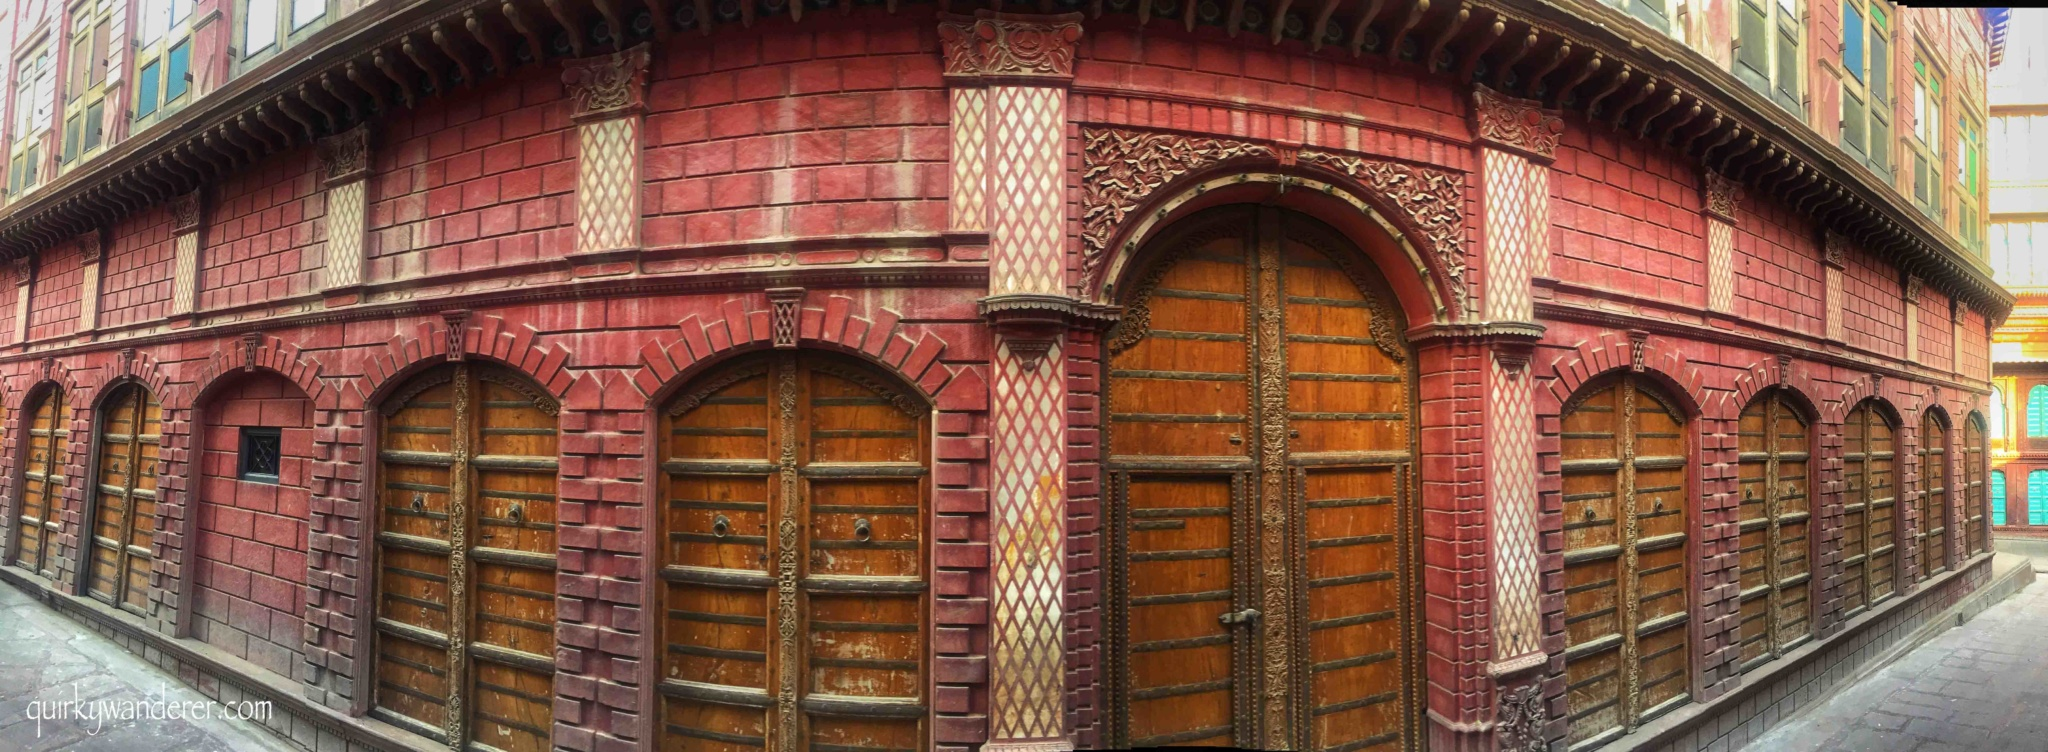 Bikaner the city famed for it's Bhujia has a variety of experiences for history buff, spiritual mavericks, architecture junkies, shopaholics and those seeking luxury. Here is a travel guide to Bikaner.